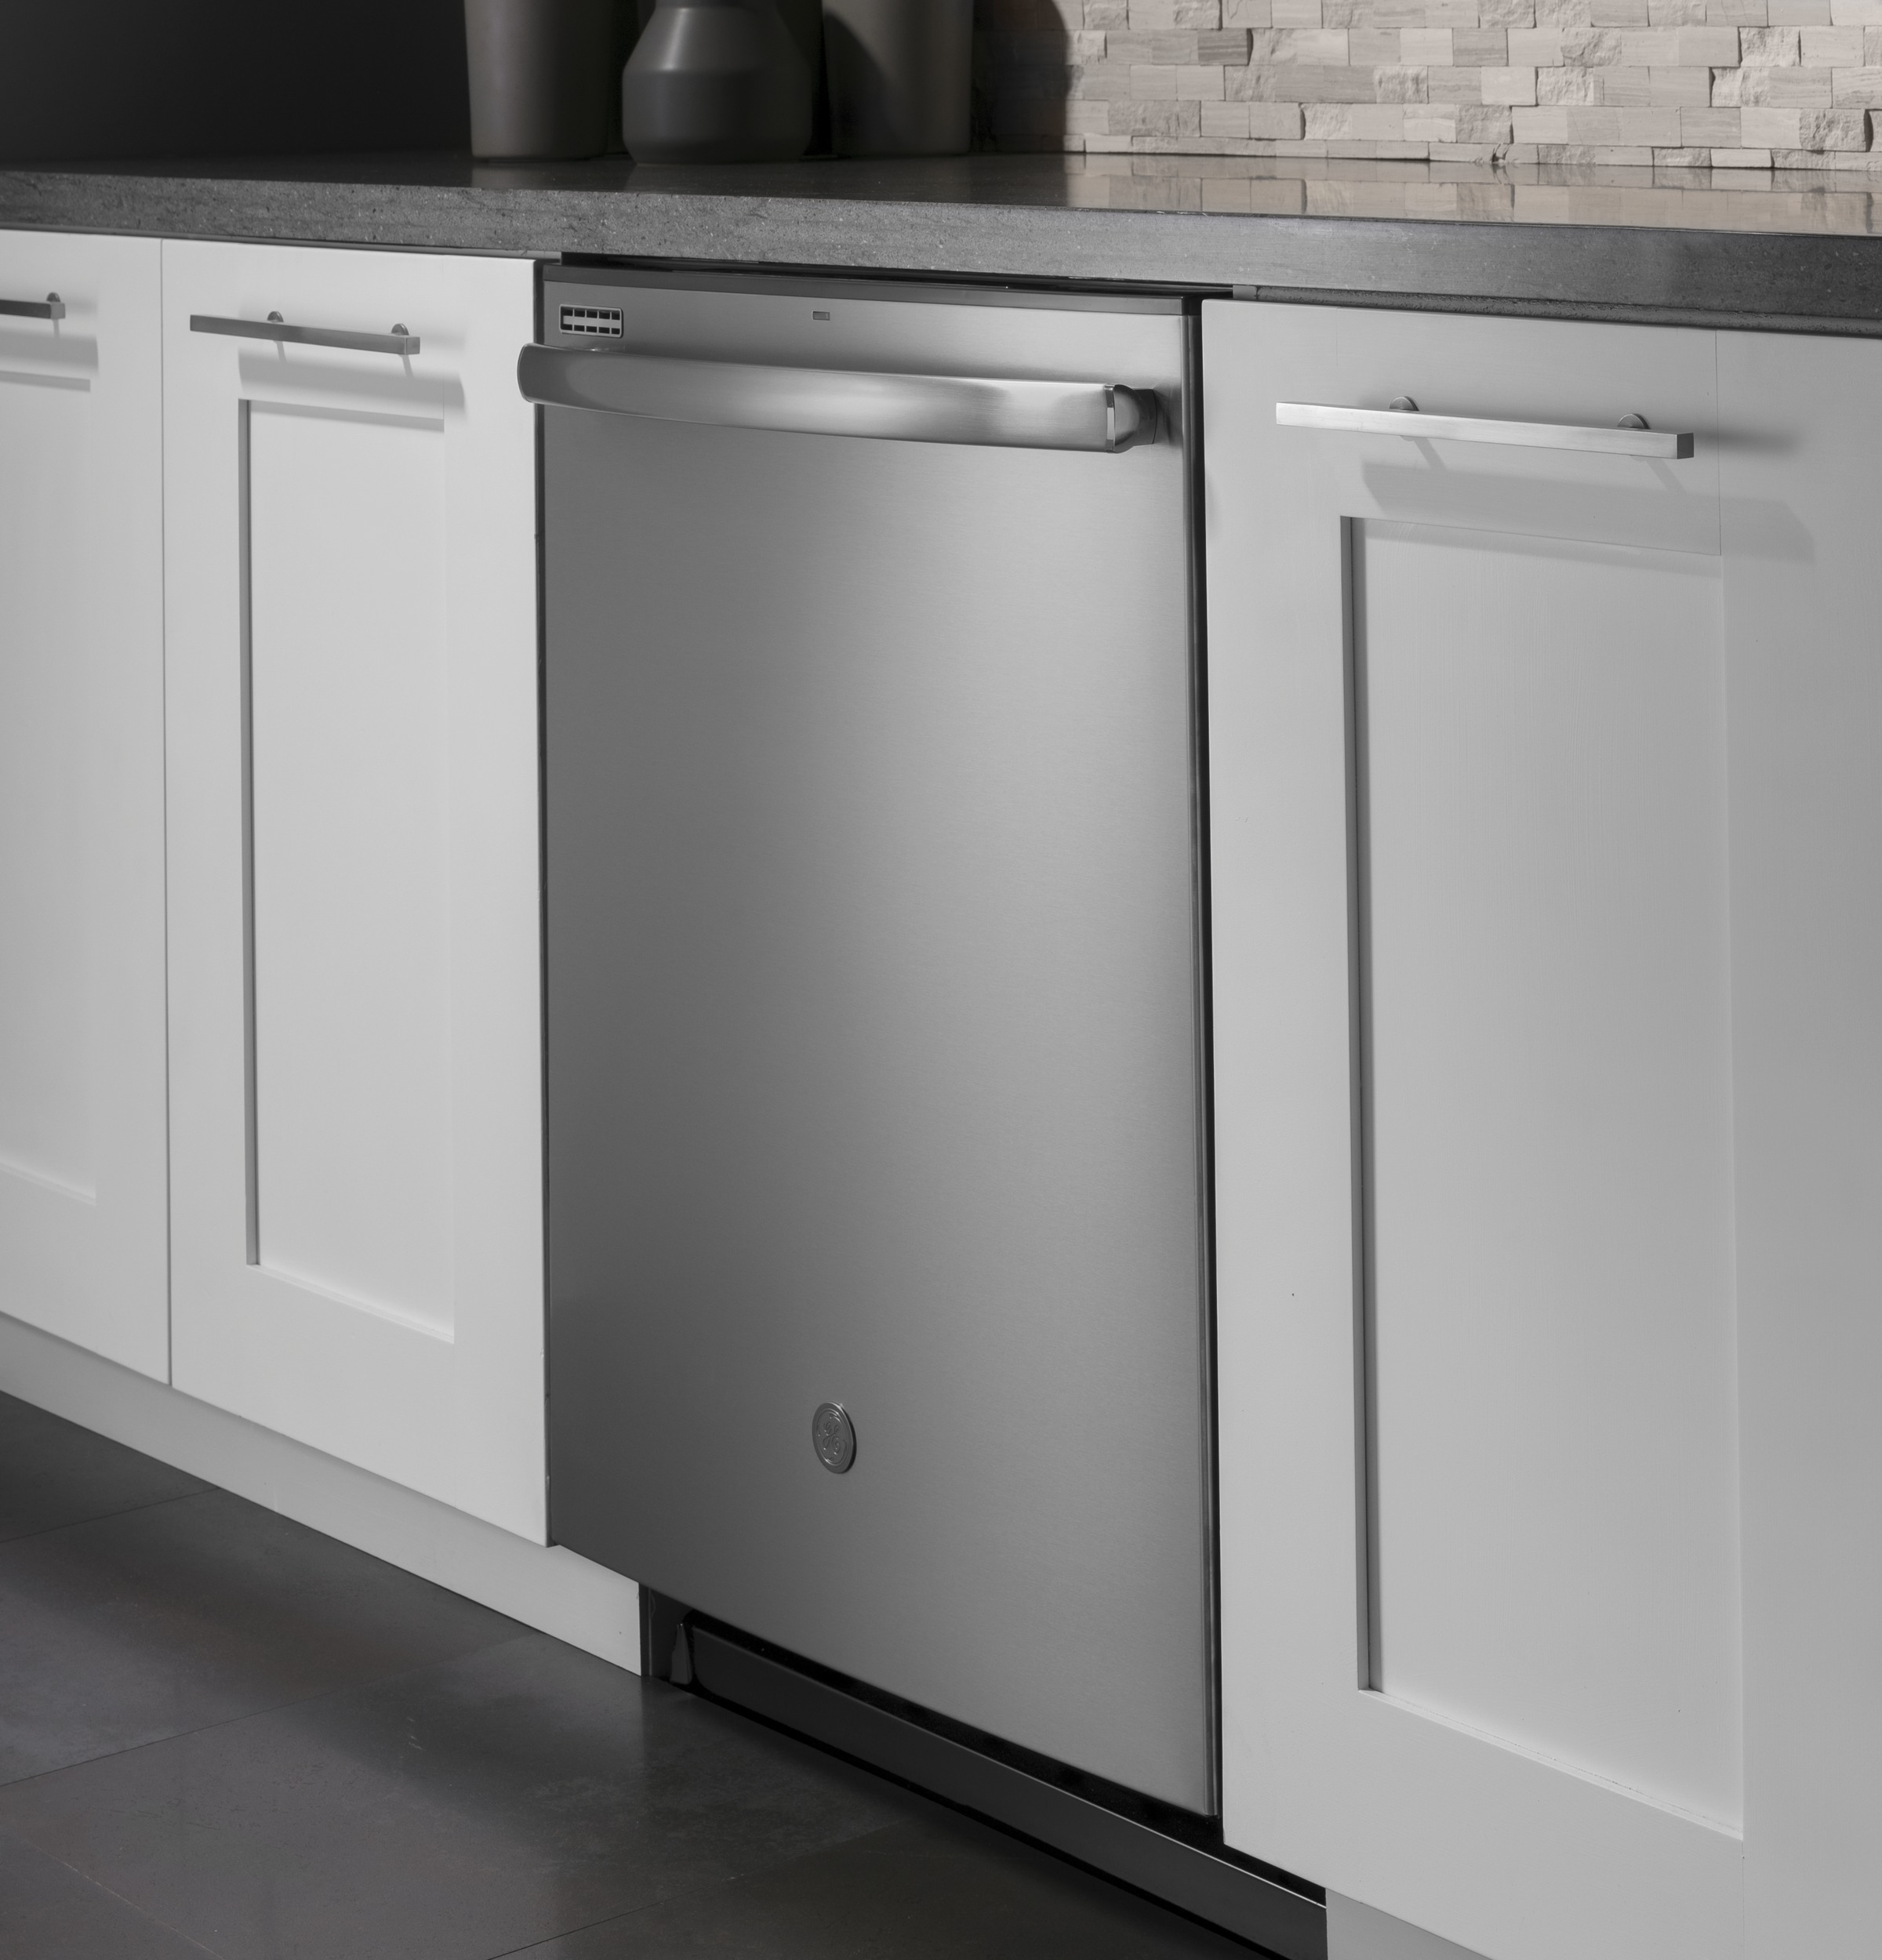 Model: GDT605PGMWW   GE GE® Top Control with Plastic Interior Dishwasher with Sanitize Cycle & Dry Boost